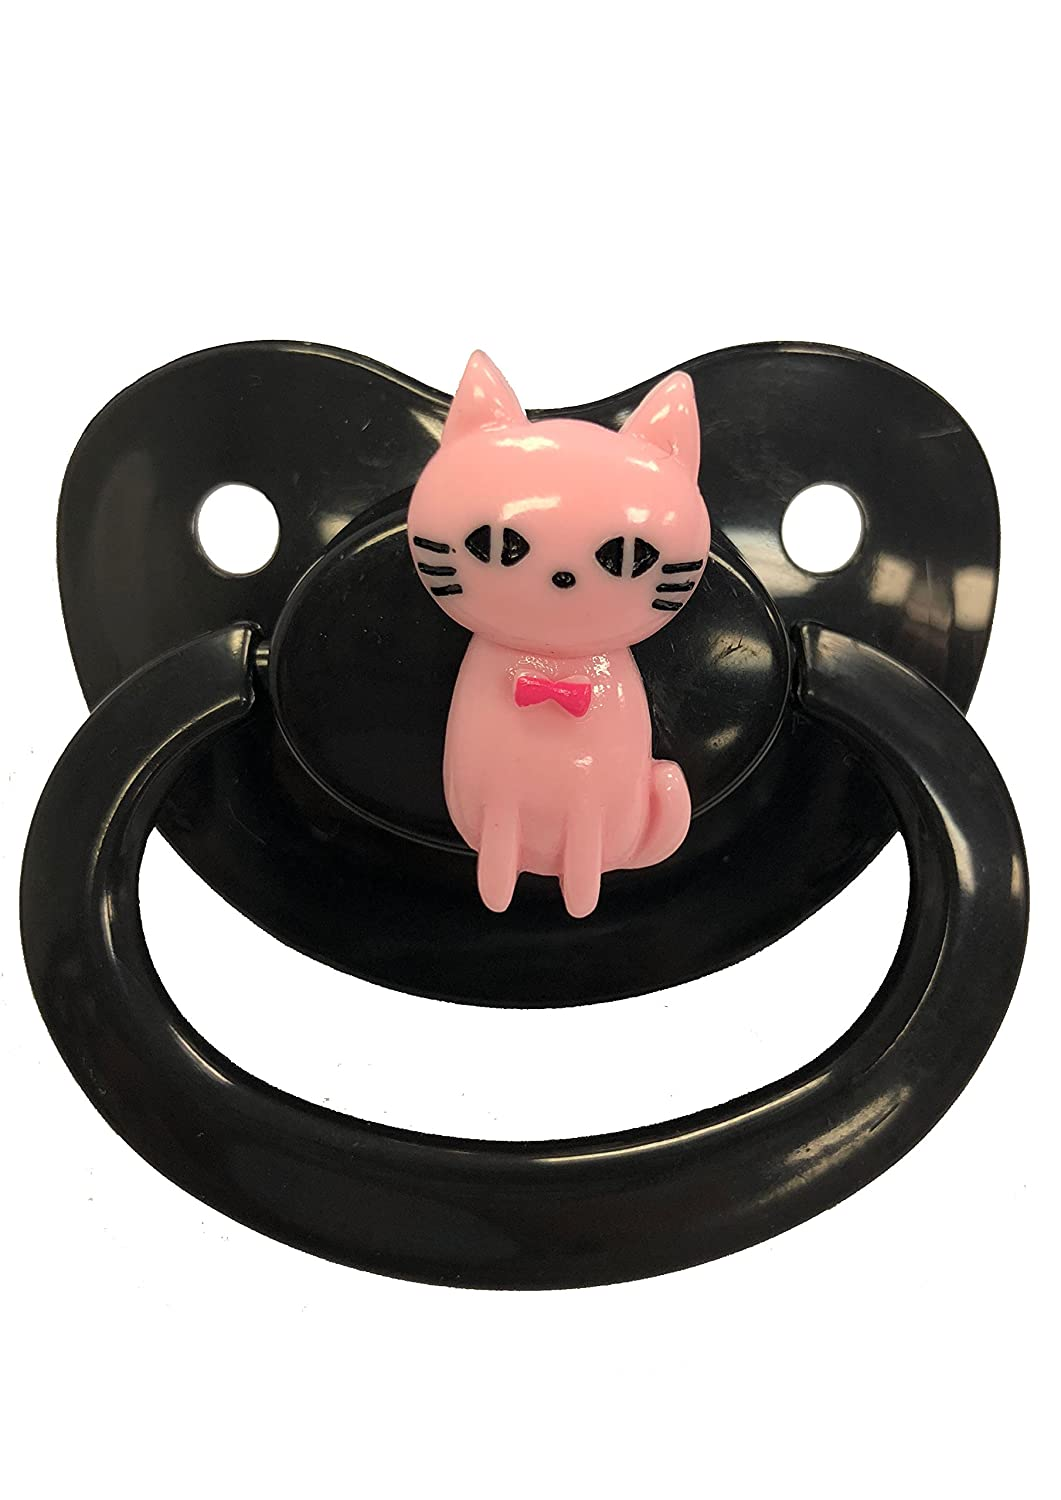 Envy Body Shop Adult Sized Cute Gem Pacifier Dummy For Adult Baby Abdl/Ddlg Big Shield (Pussy Cat, Pink Cat/Black Paci) by Envy Body Shop